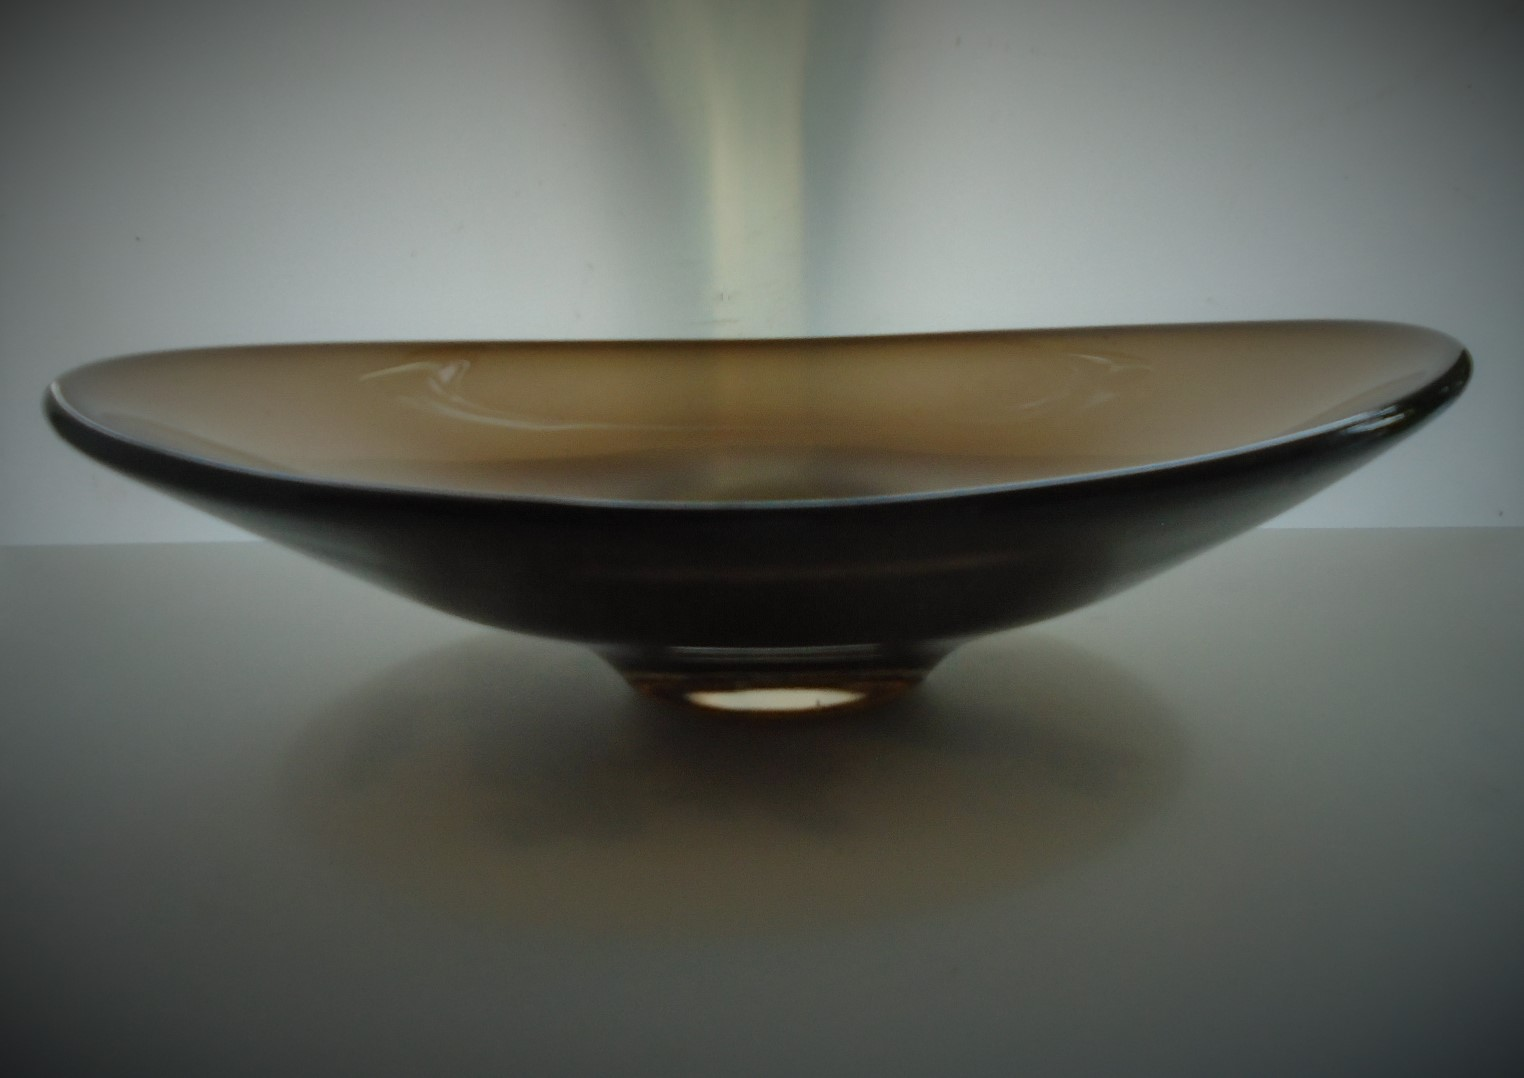 Offered for sale is a stunning example of a vintage Whitefriars Glass Dish. Catalogue No. 9663 in the Cinnamon Colourway. Designed by Geoffrey Baxter around 1966.